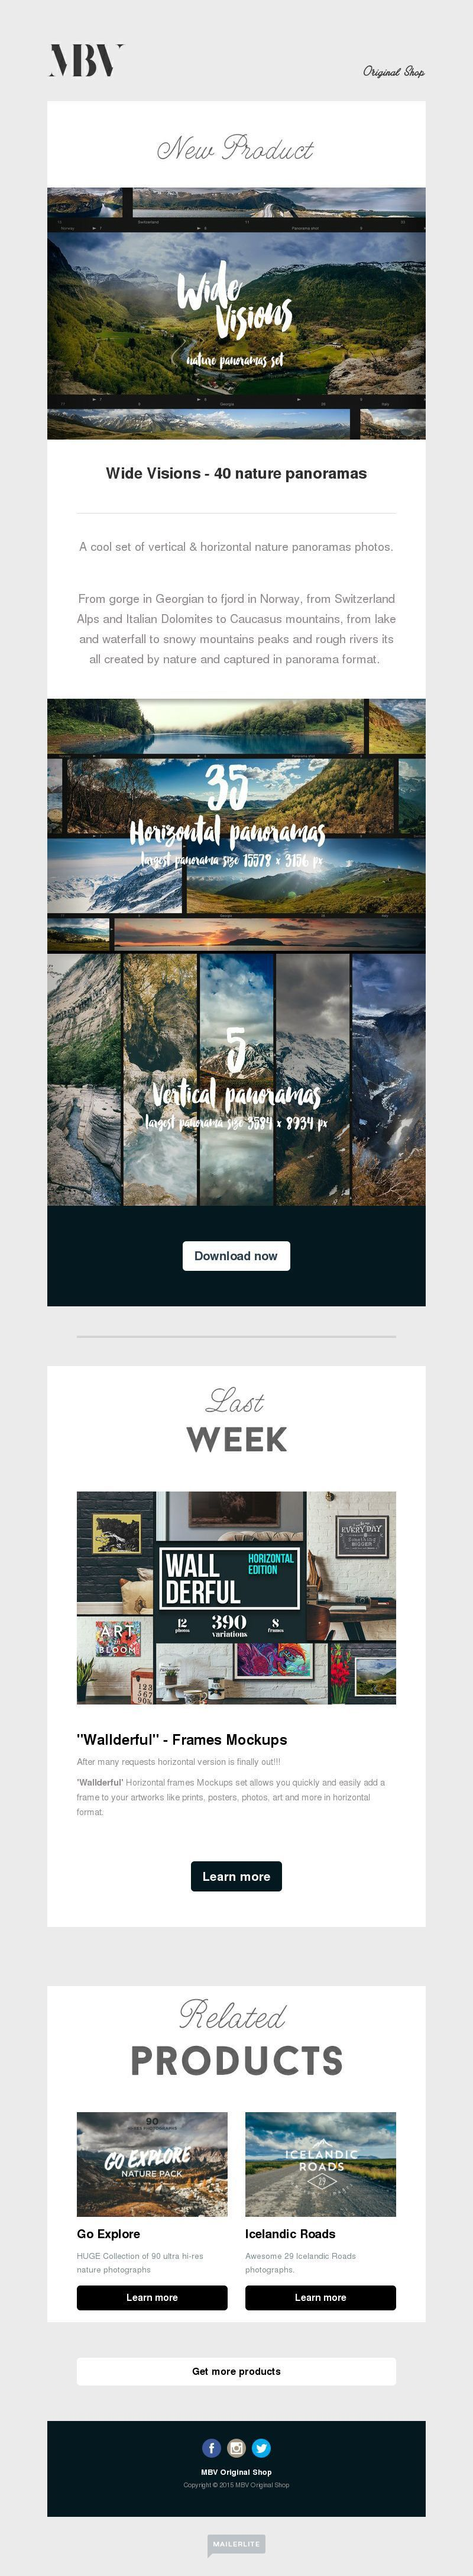 Photography Newsletter Design Gallery, Examples | MailerLite